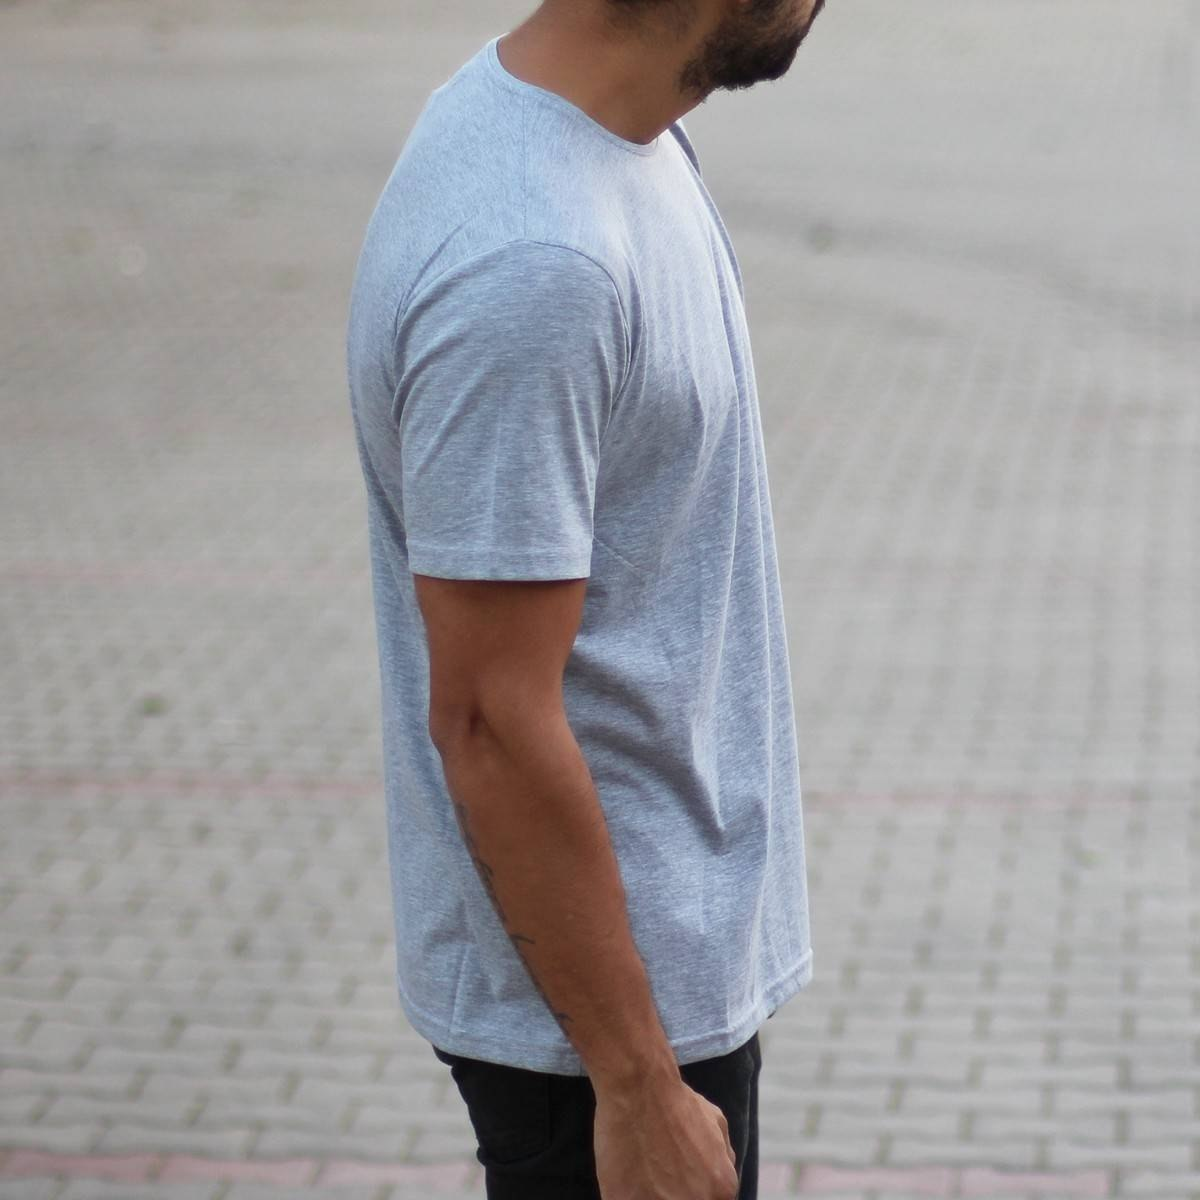 Men's Oversized Basic T-Shirt Gray Mv Premium Brand - 2